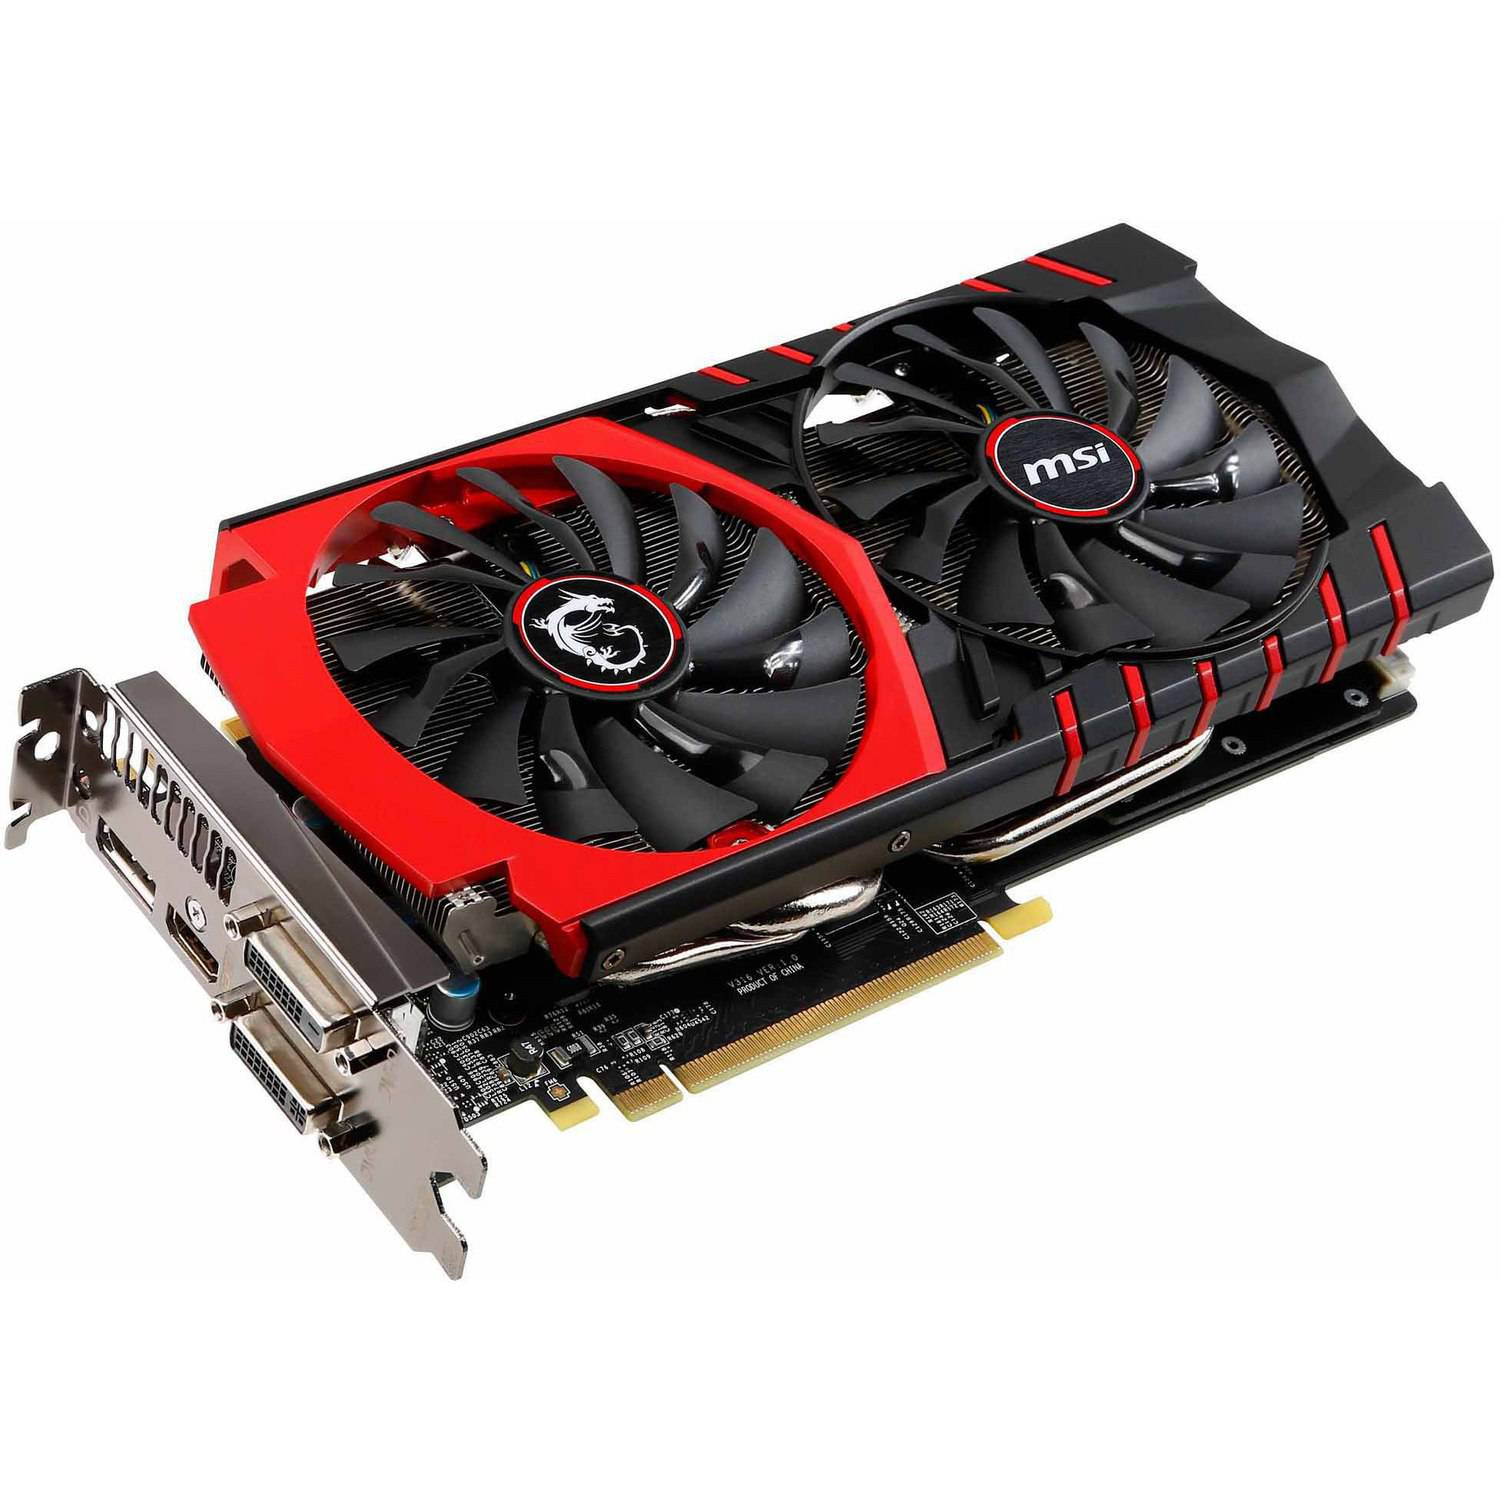 MSI USA GTX 980 GAMING 4G MSI GTX 980 GAMING 4G GeForce GTX 980 Graphic Card - 1.22 GHz Core - 4 GB GDDR5 - PCI Express 3.0 x16 - Dual Slot Space Required - 7010 MHz Memory Clock -